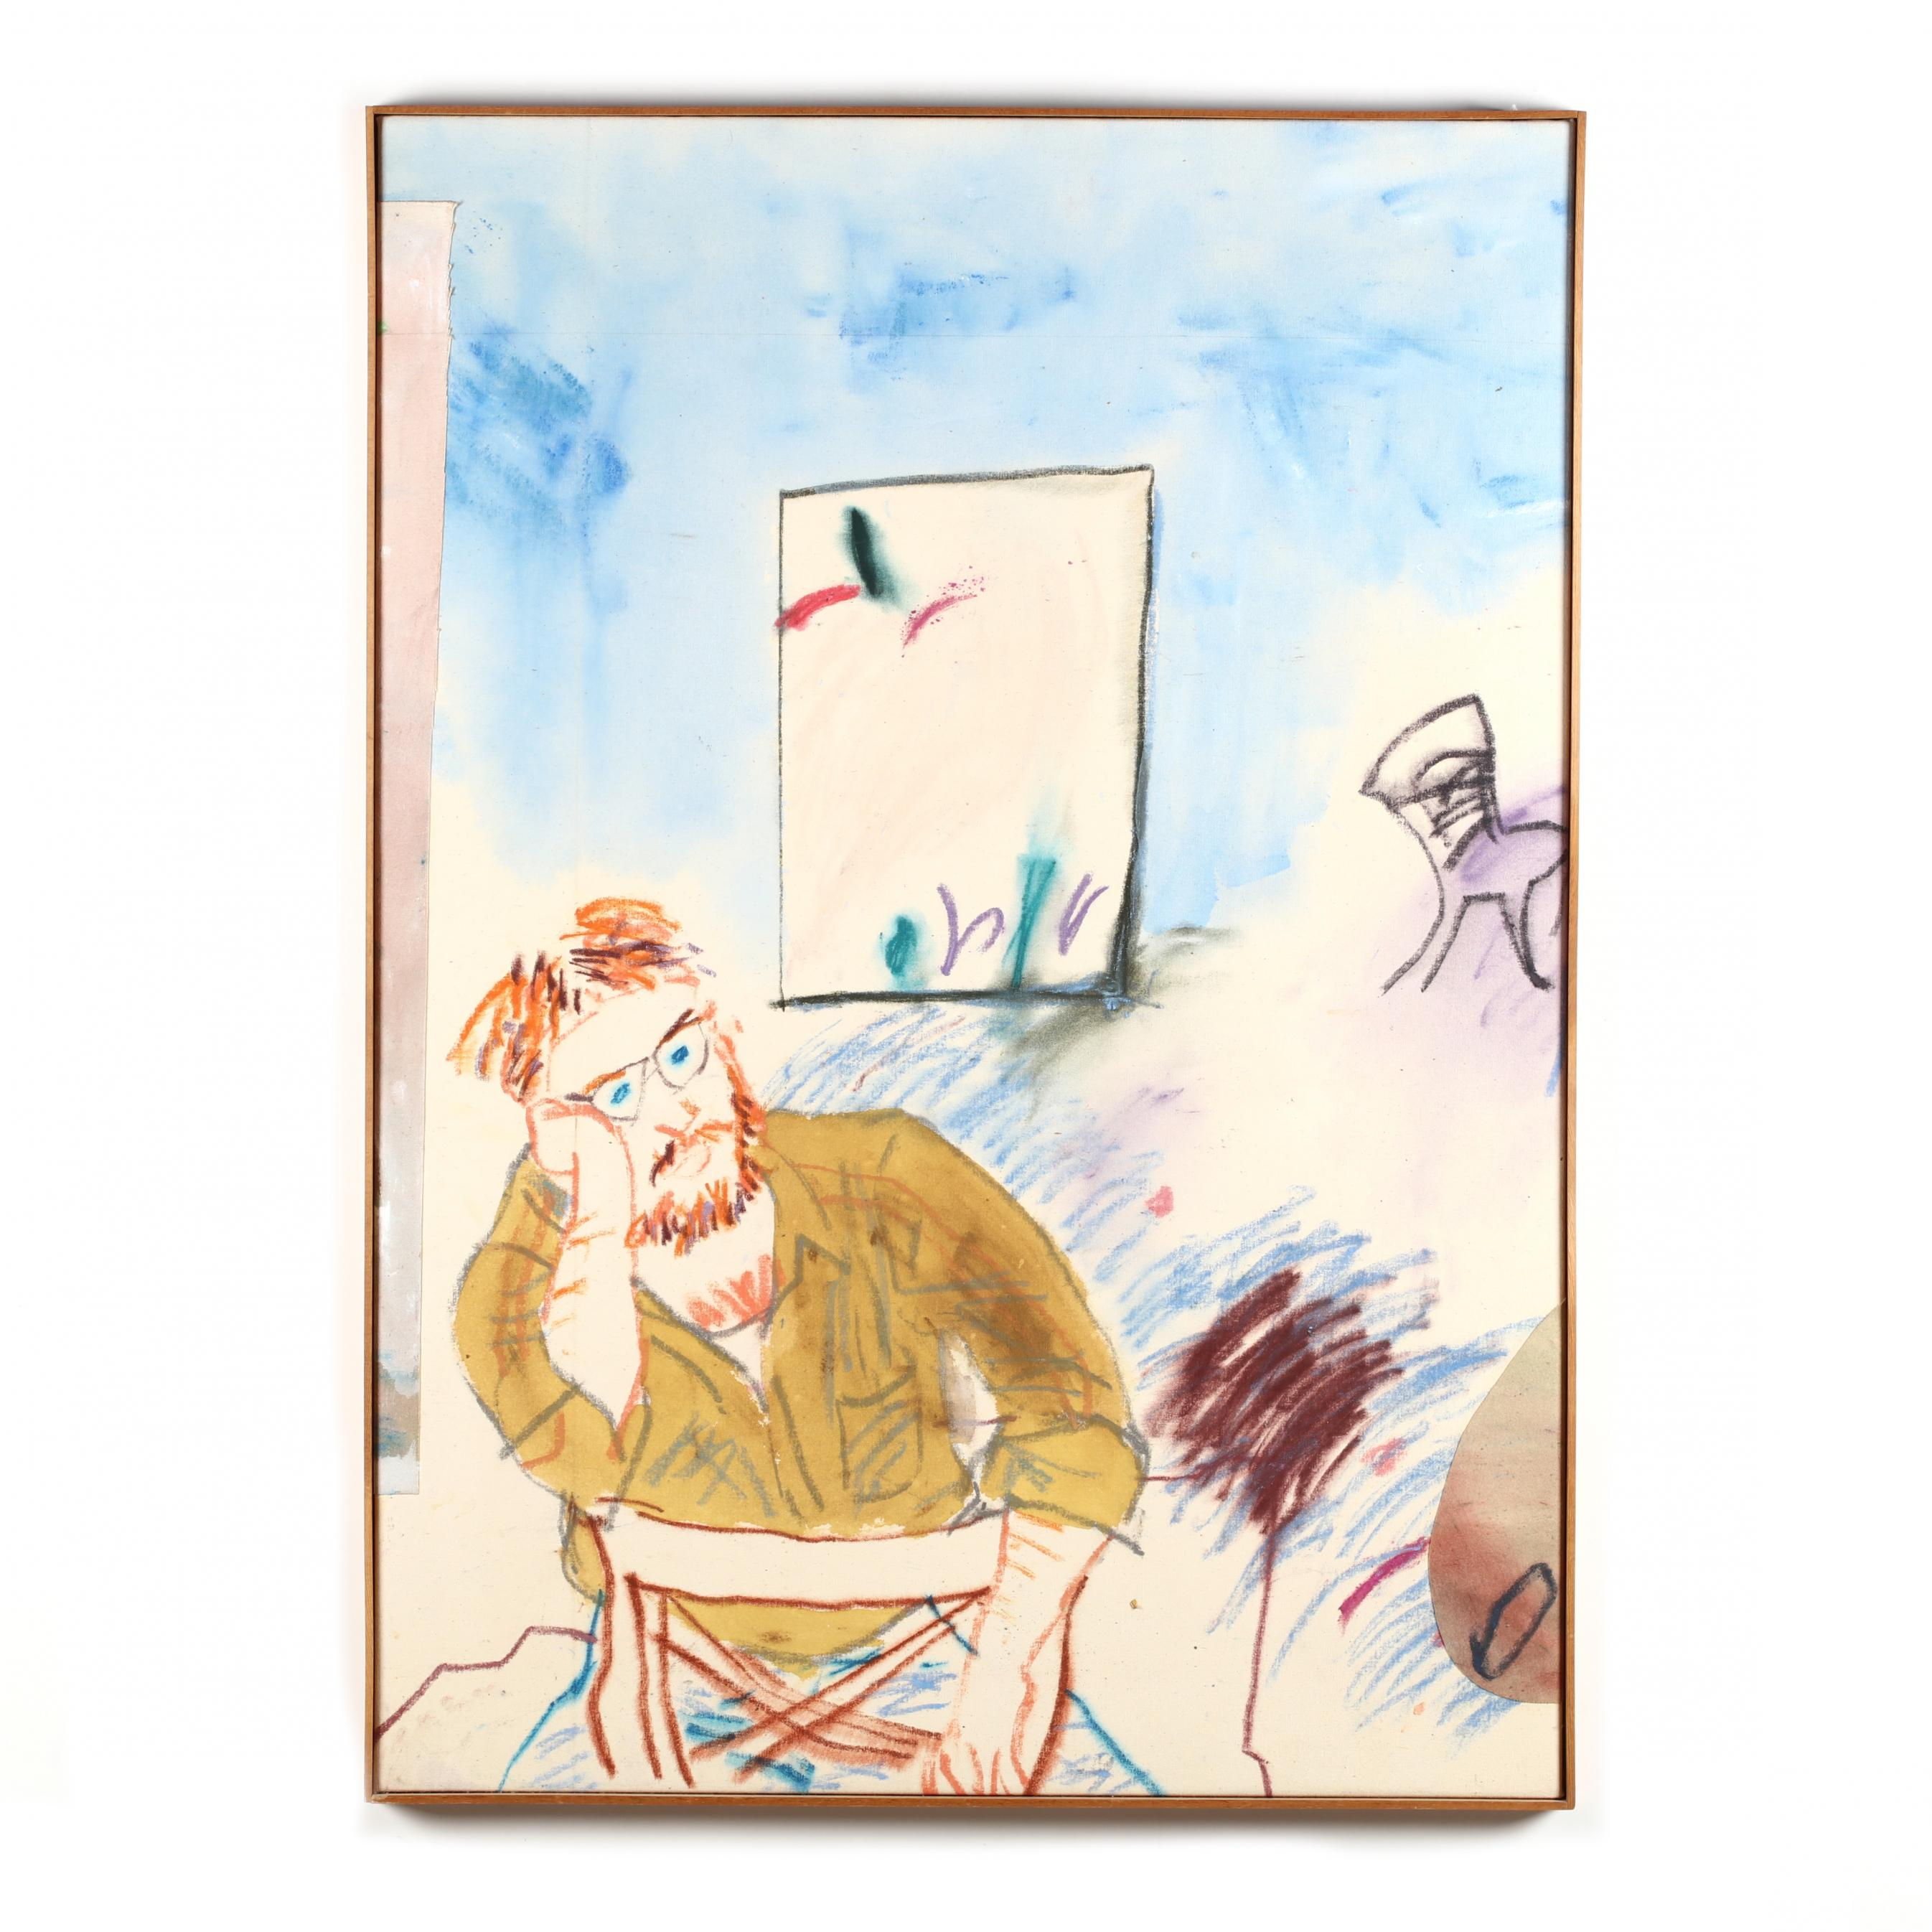 andrew-hudson-d-c-b-1935-i-bill-astraddle-on-chair-with-painting-by-paul-fournier-i